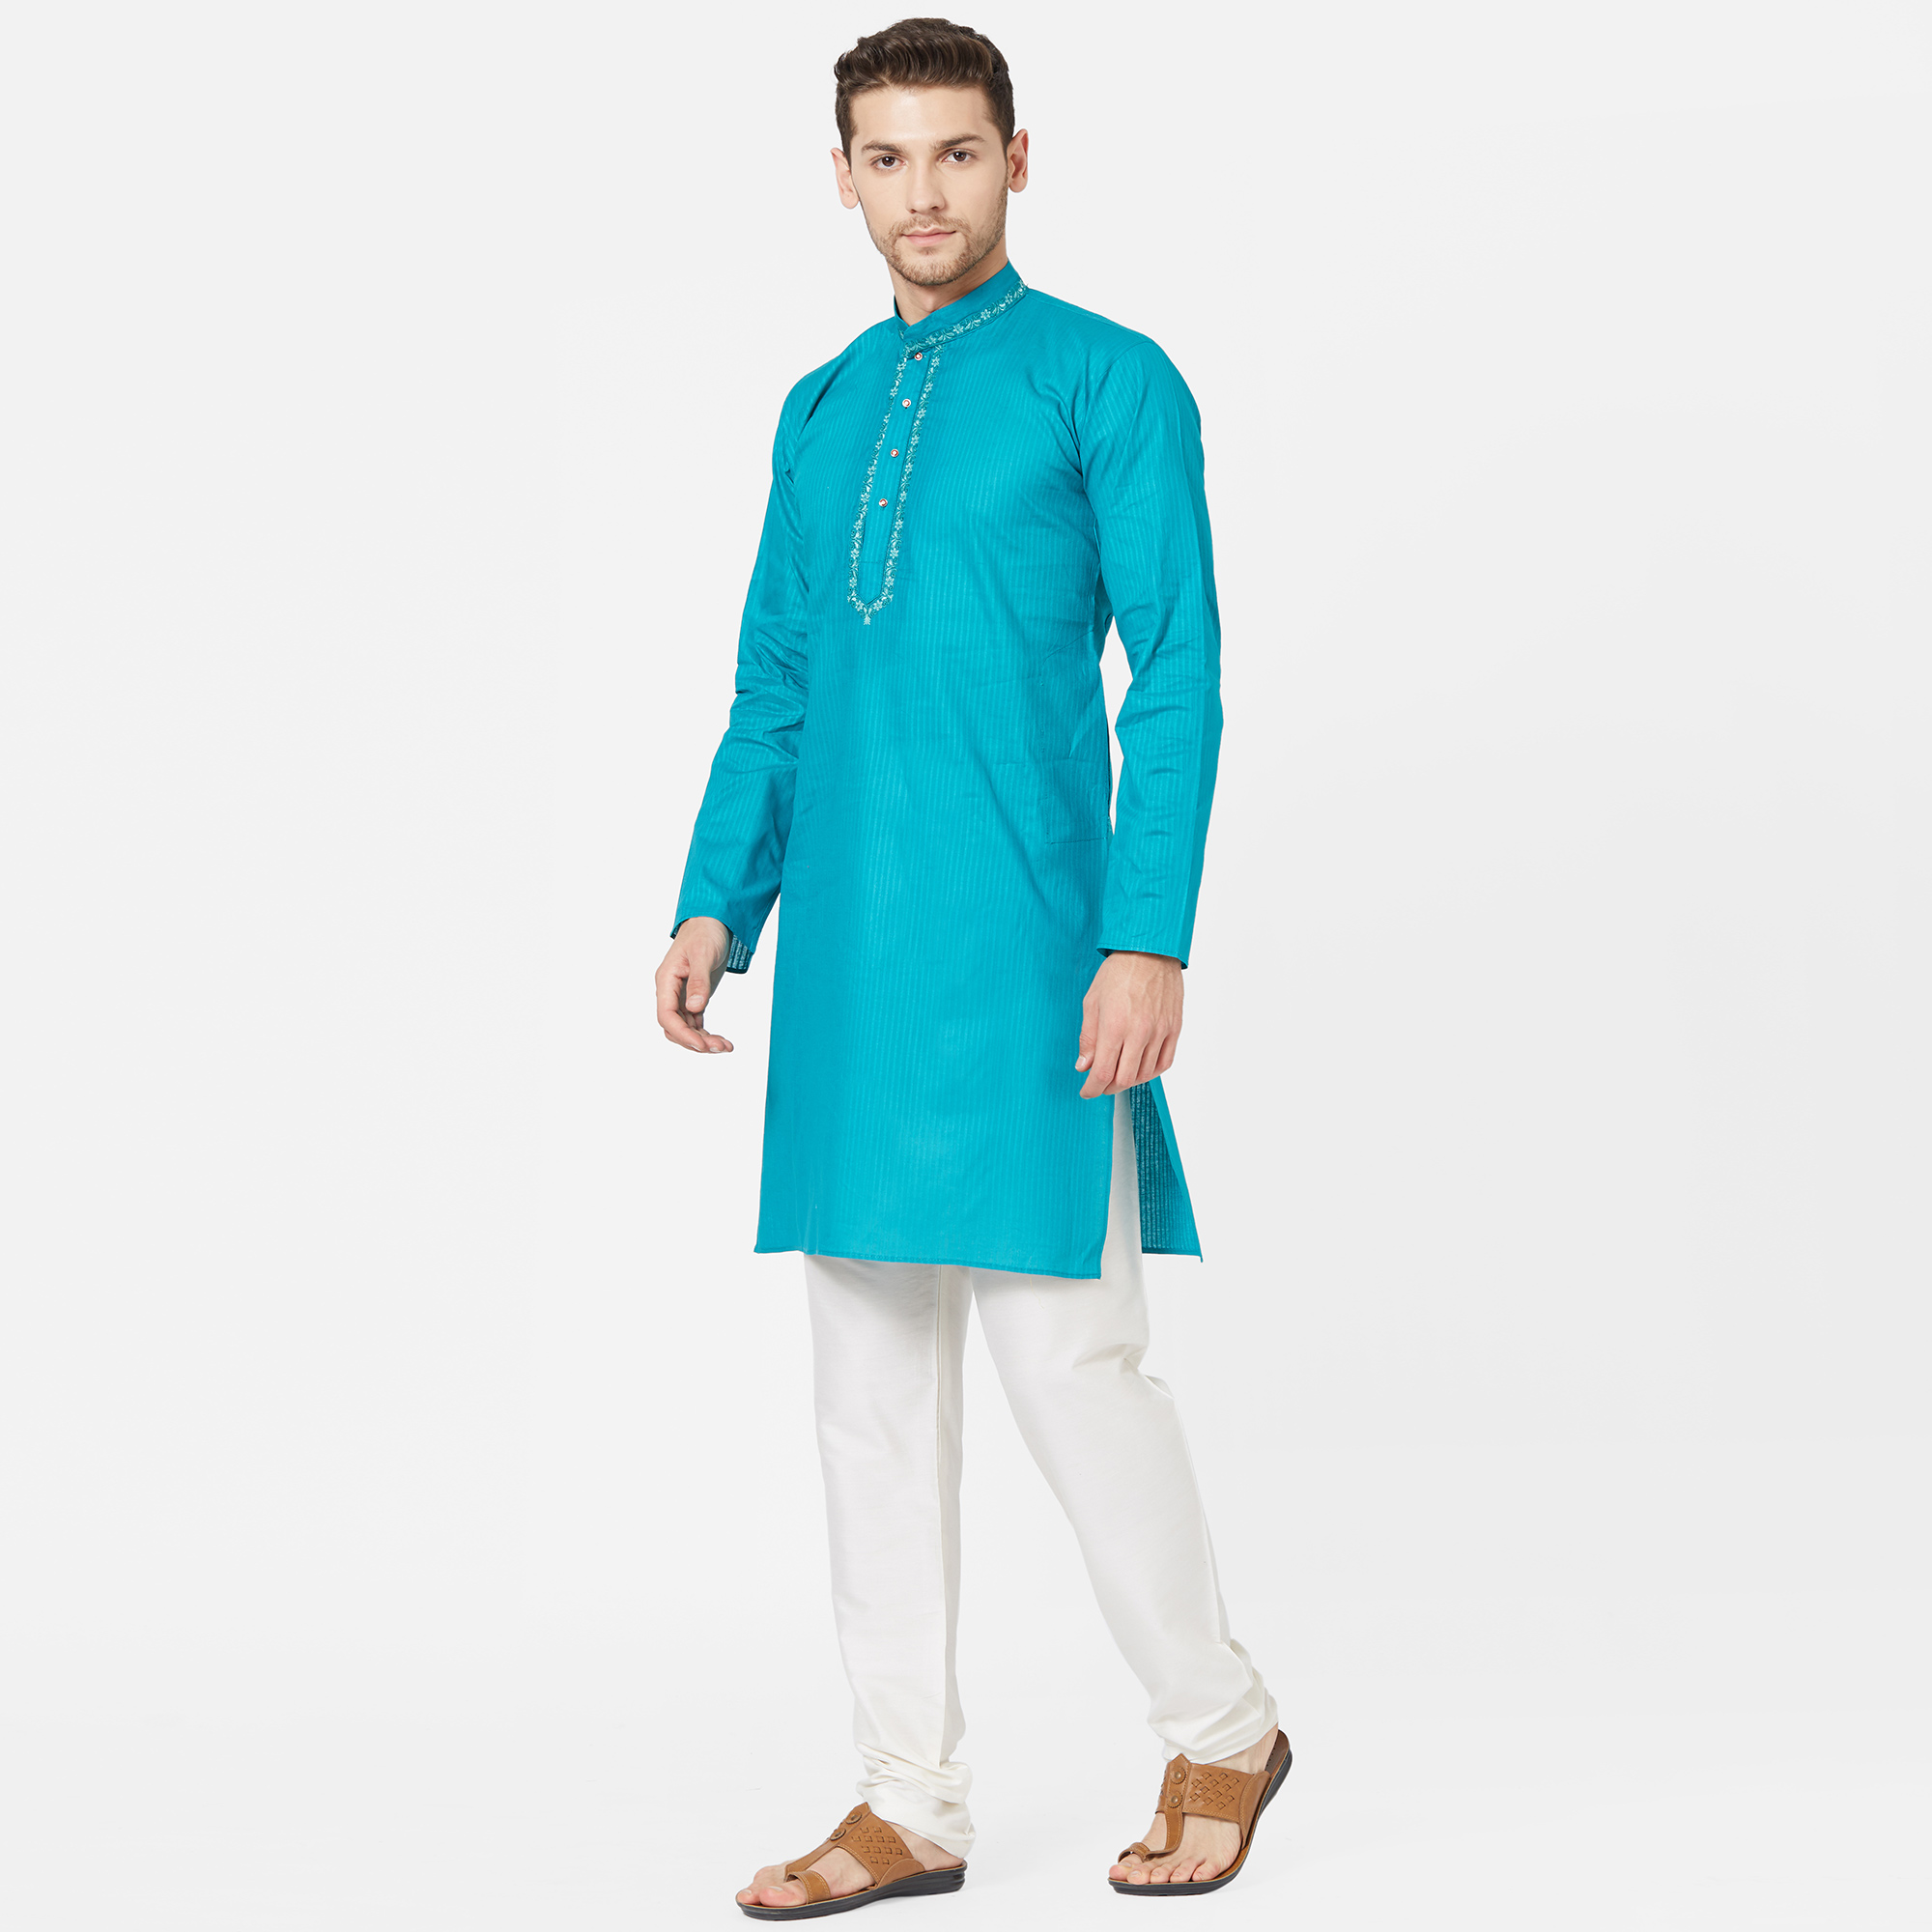 Glorious Sky Blue Colored Festive Wear Cotton Kurta